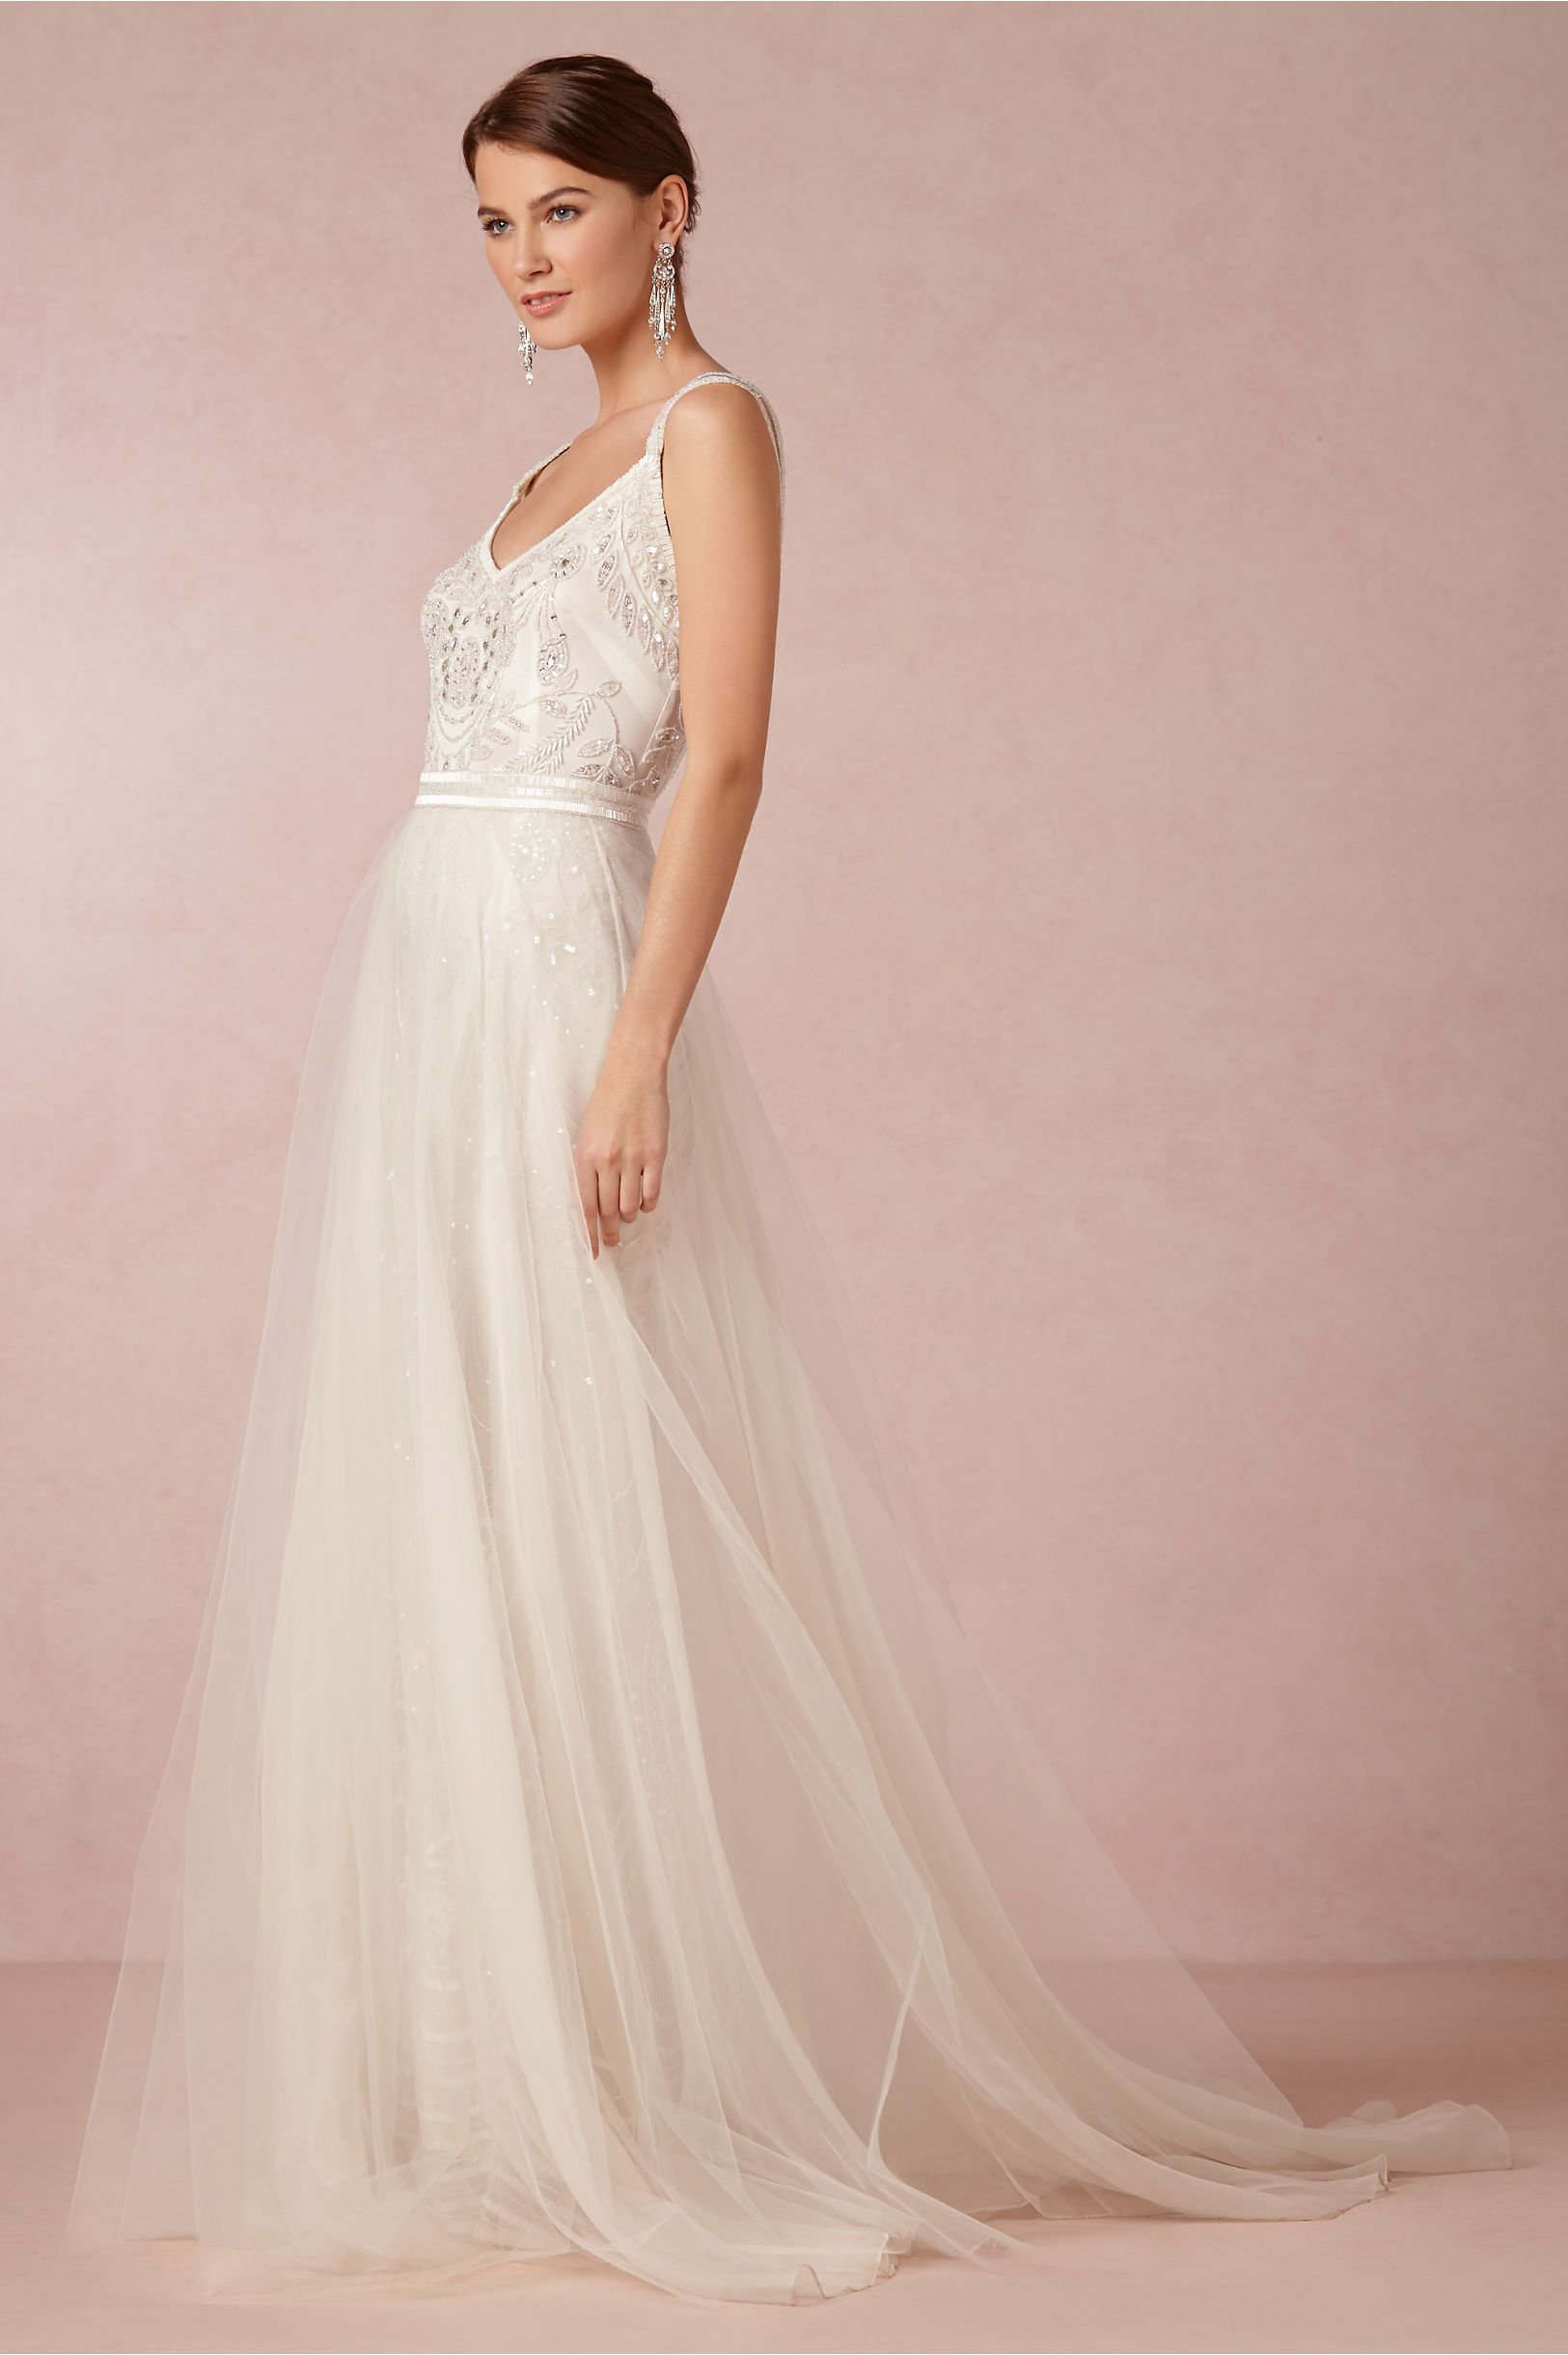 BHLDN de Anthropolo mod. | Weddalia | PROM OH YEAH | Pinterest ...